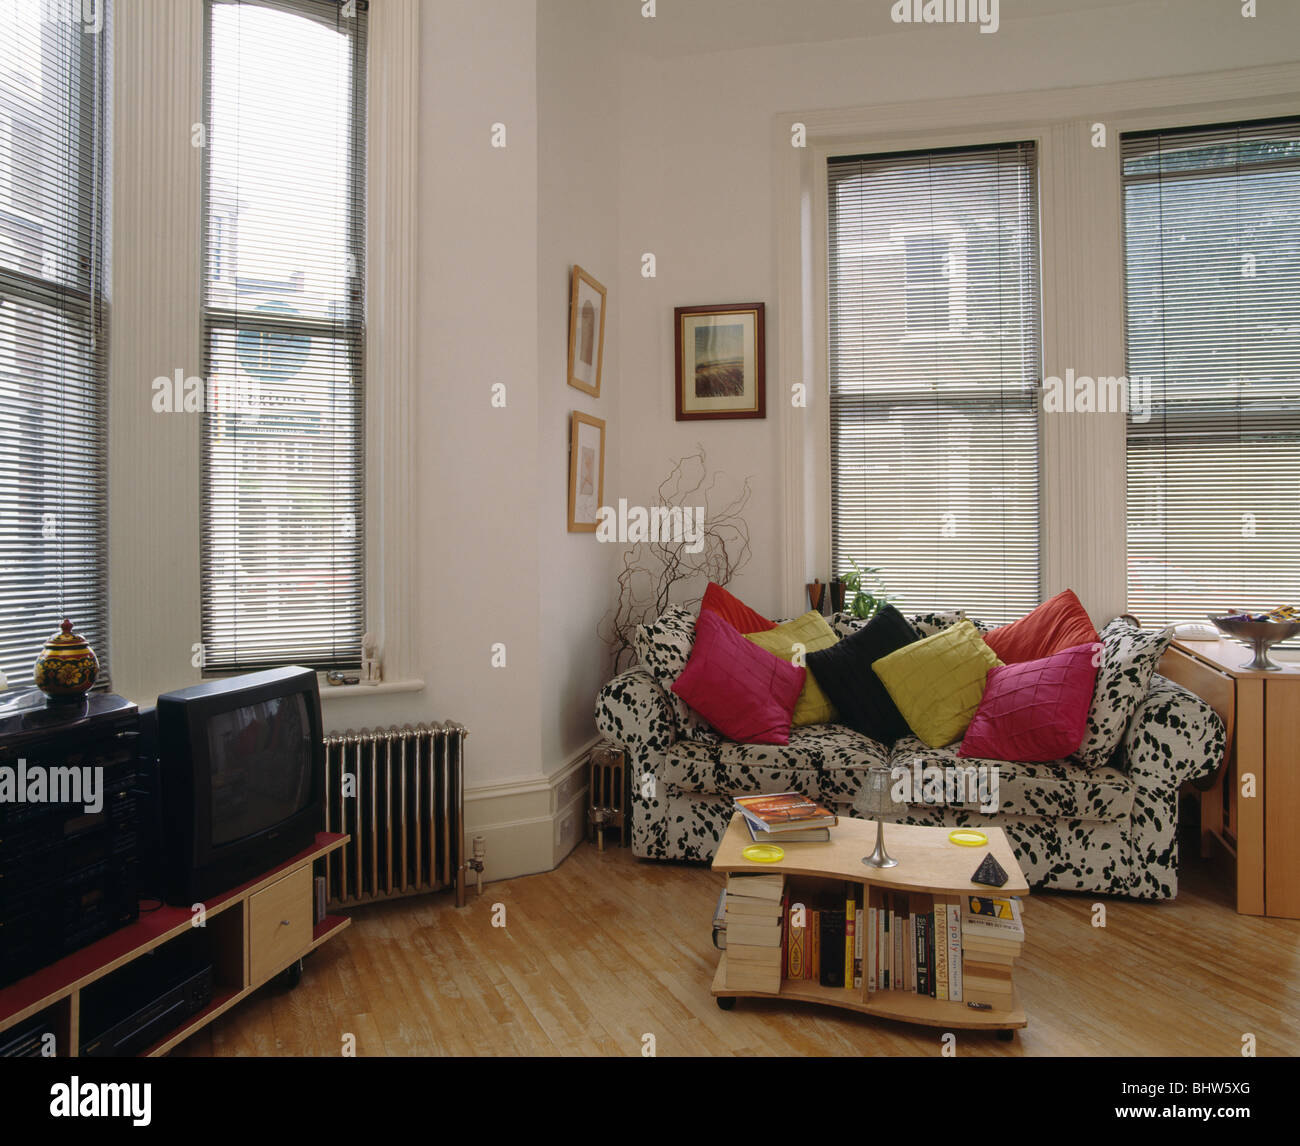 Picture of: Pink And Lime Green Cushions On Animal Print Sofa Front Of Windows In Stock Photo Alamy